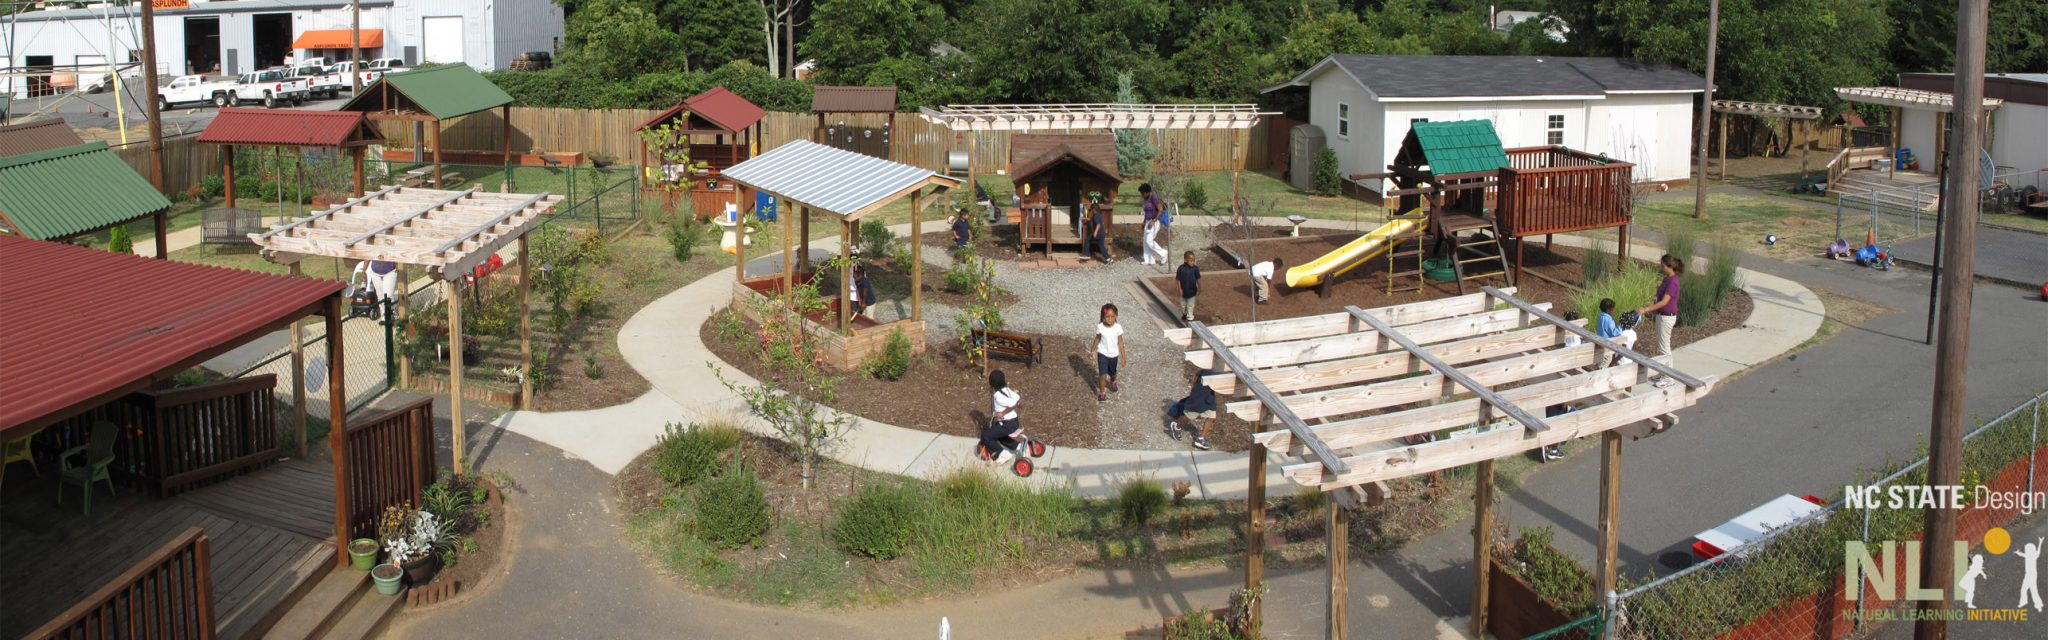 The Early Learning Center - After Renovation